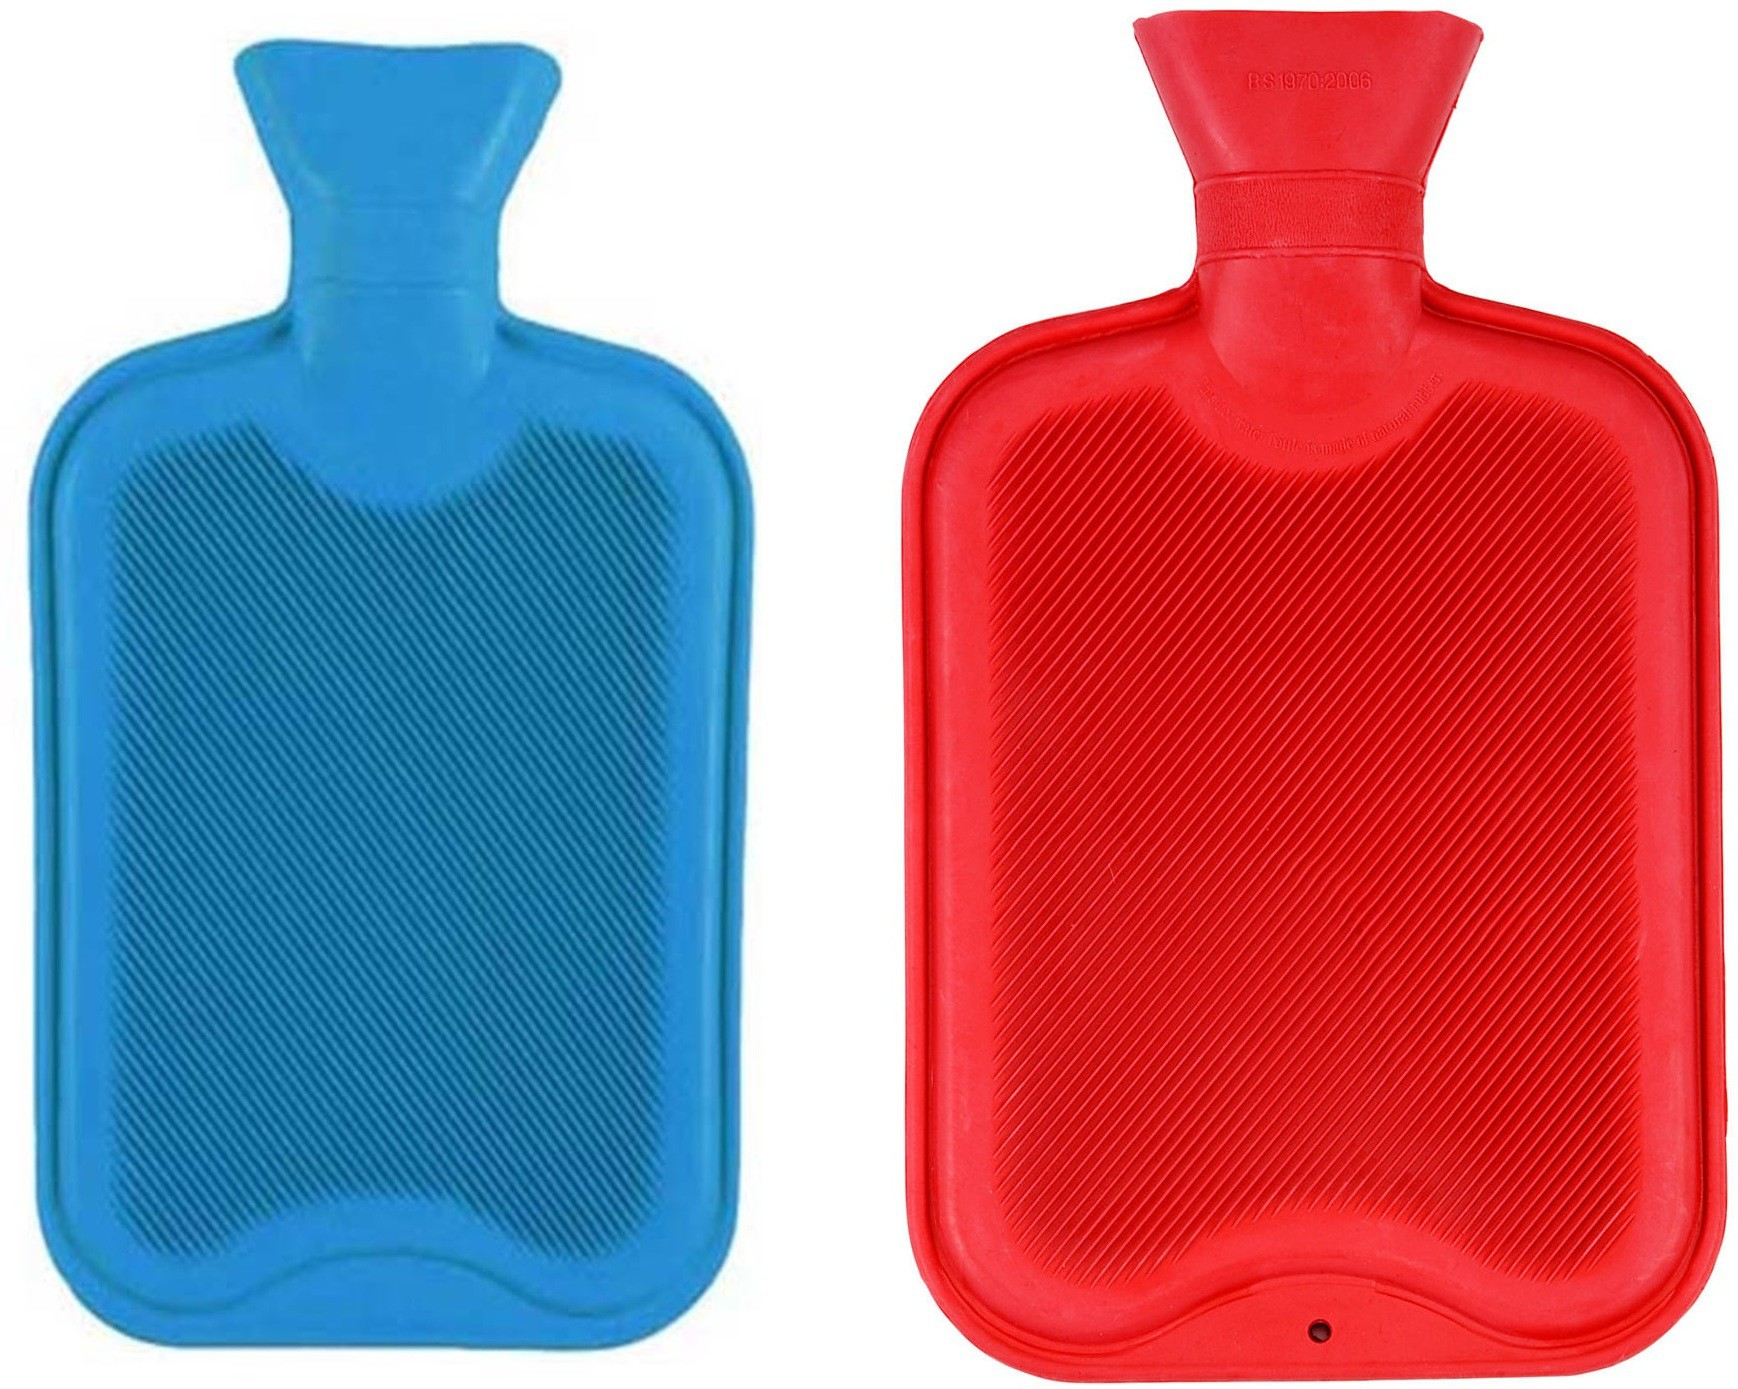 Rozols Combo Comforts Non-electrical 3 L Hot Water Bag(Red, Blue)